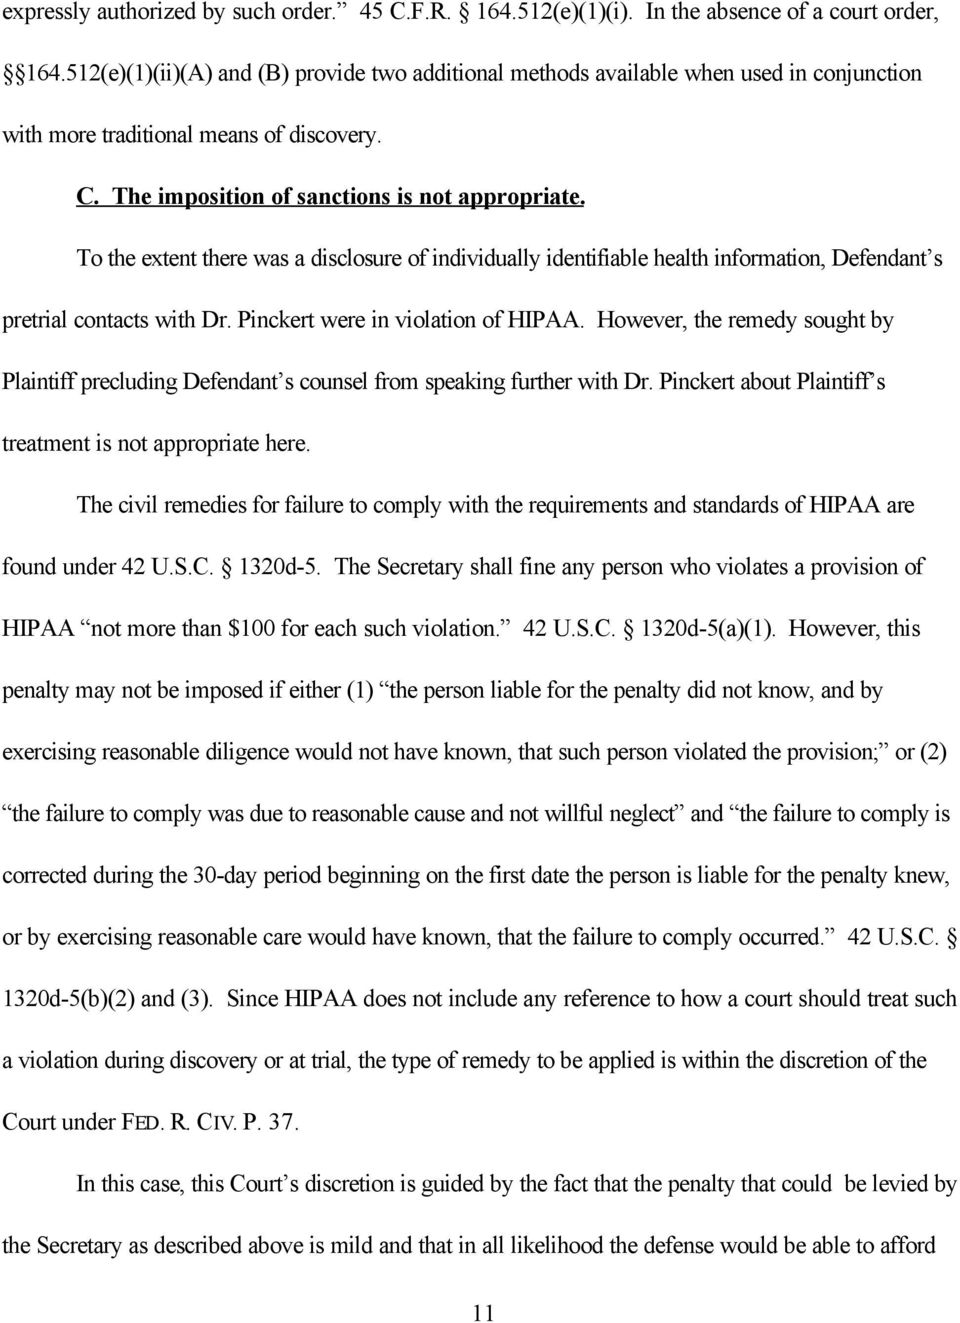 To the extent there was a disclosure of individually identifiable health information, Defendant s pretrial contacts with Dr. Pinckert were in violation of HIPAA.